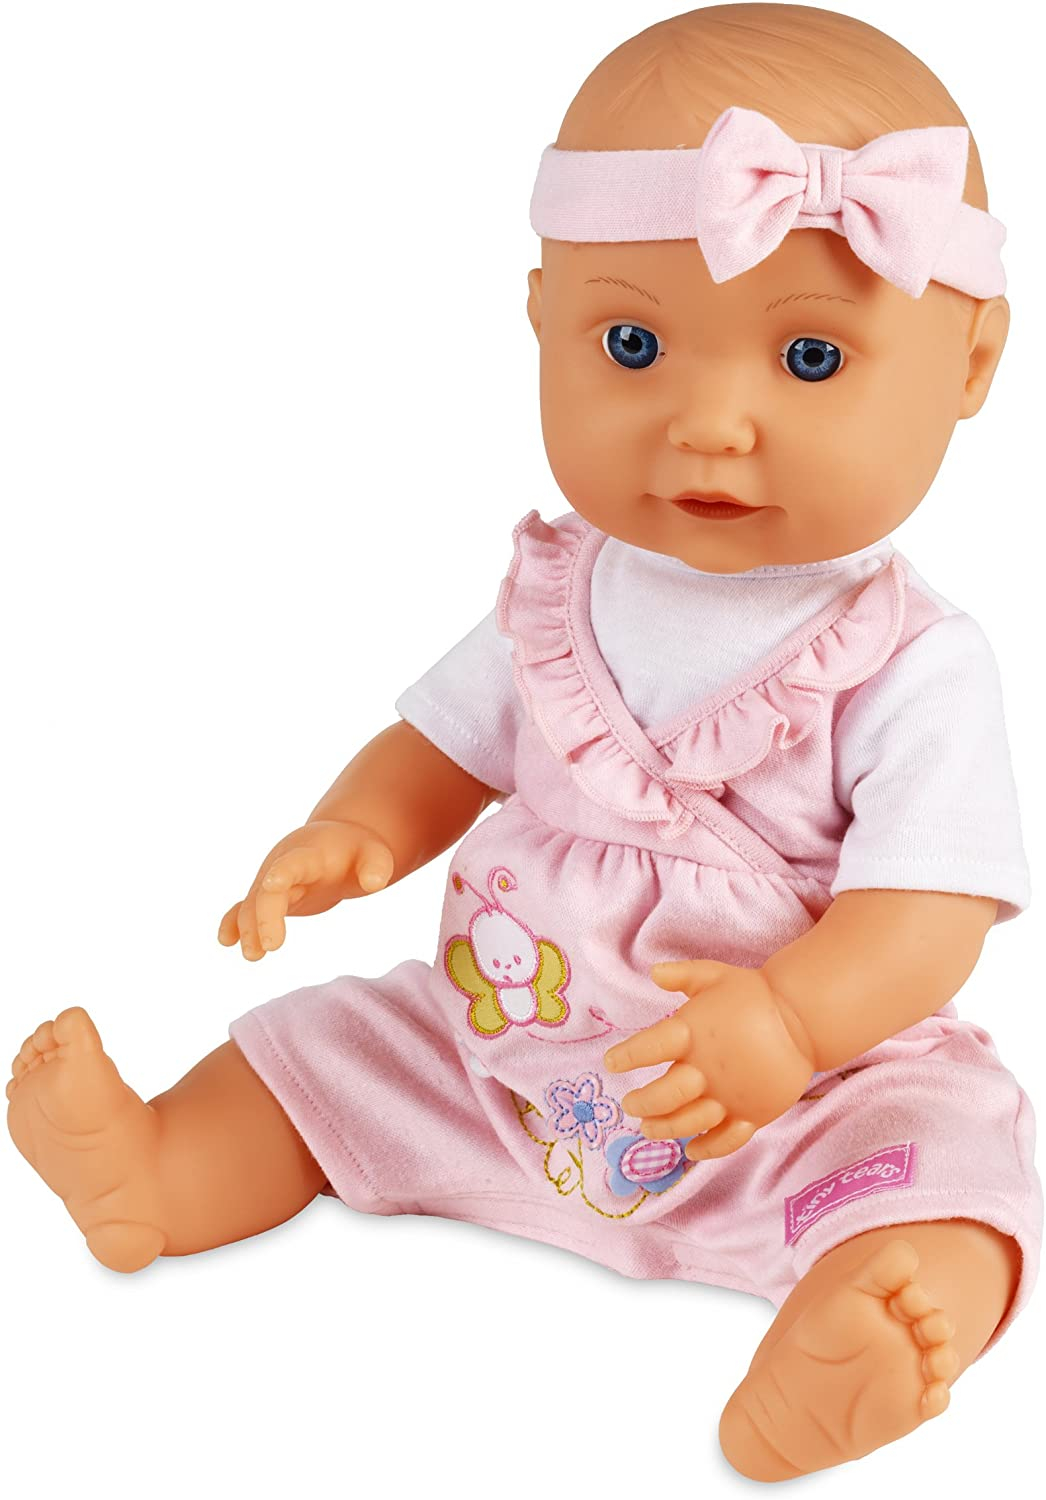 John Adams Classic Tiny Tears Interactive Doll